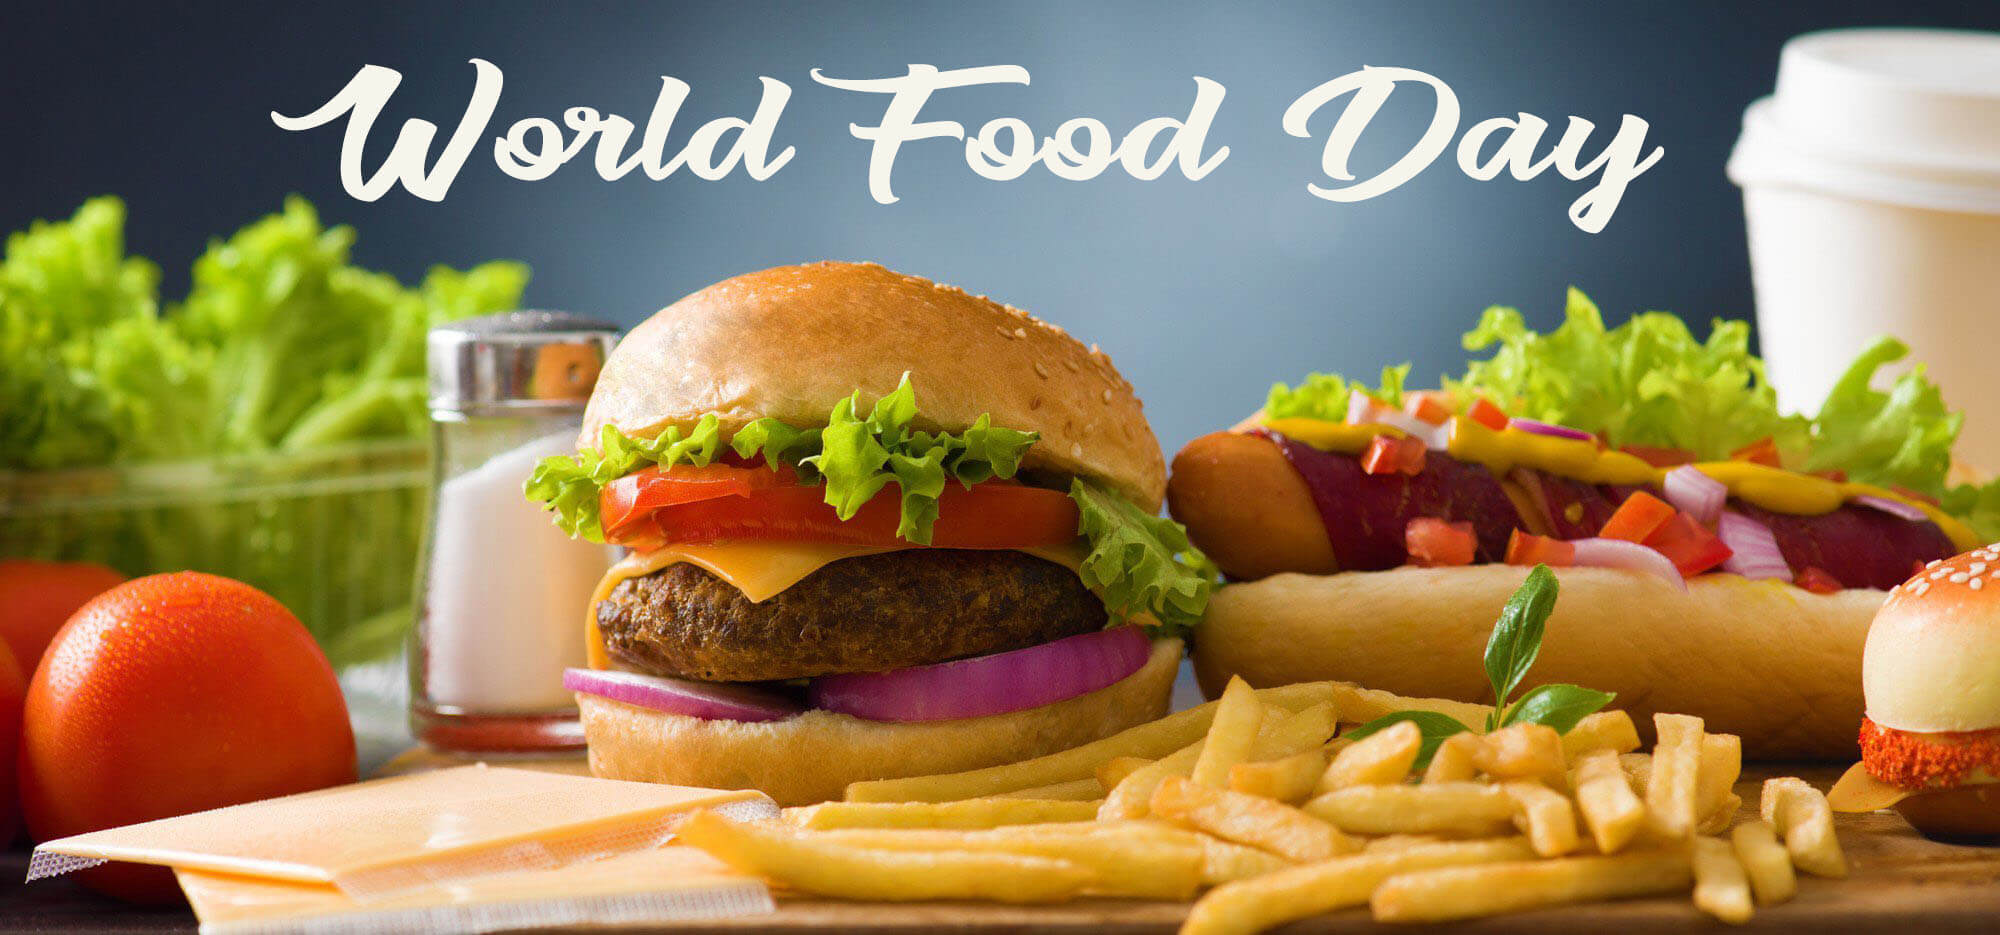 world food day october 16 burger french fries hd wallpaper